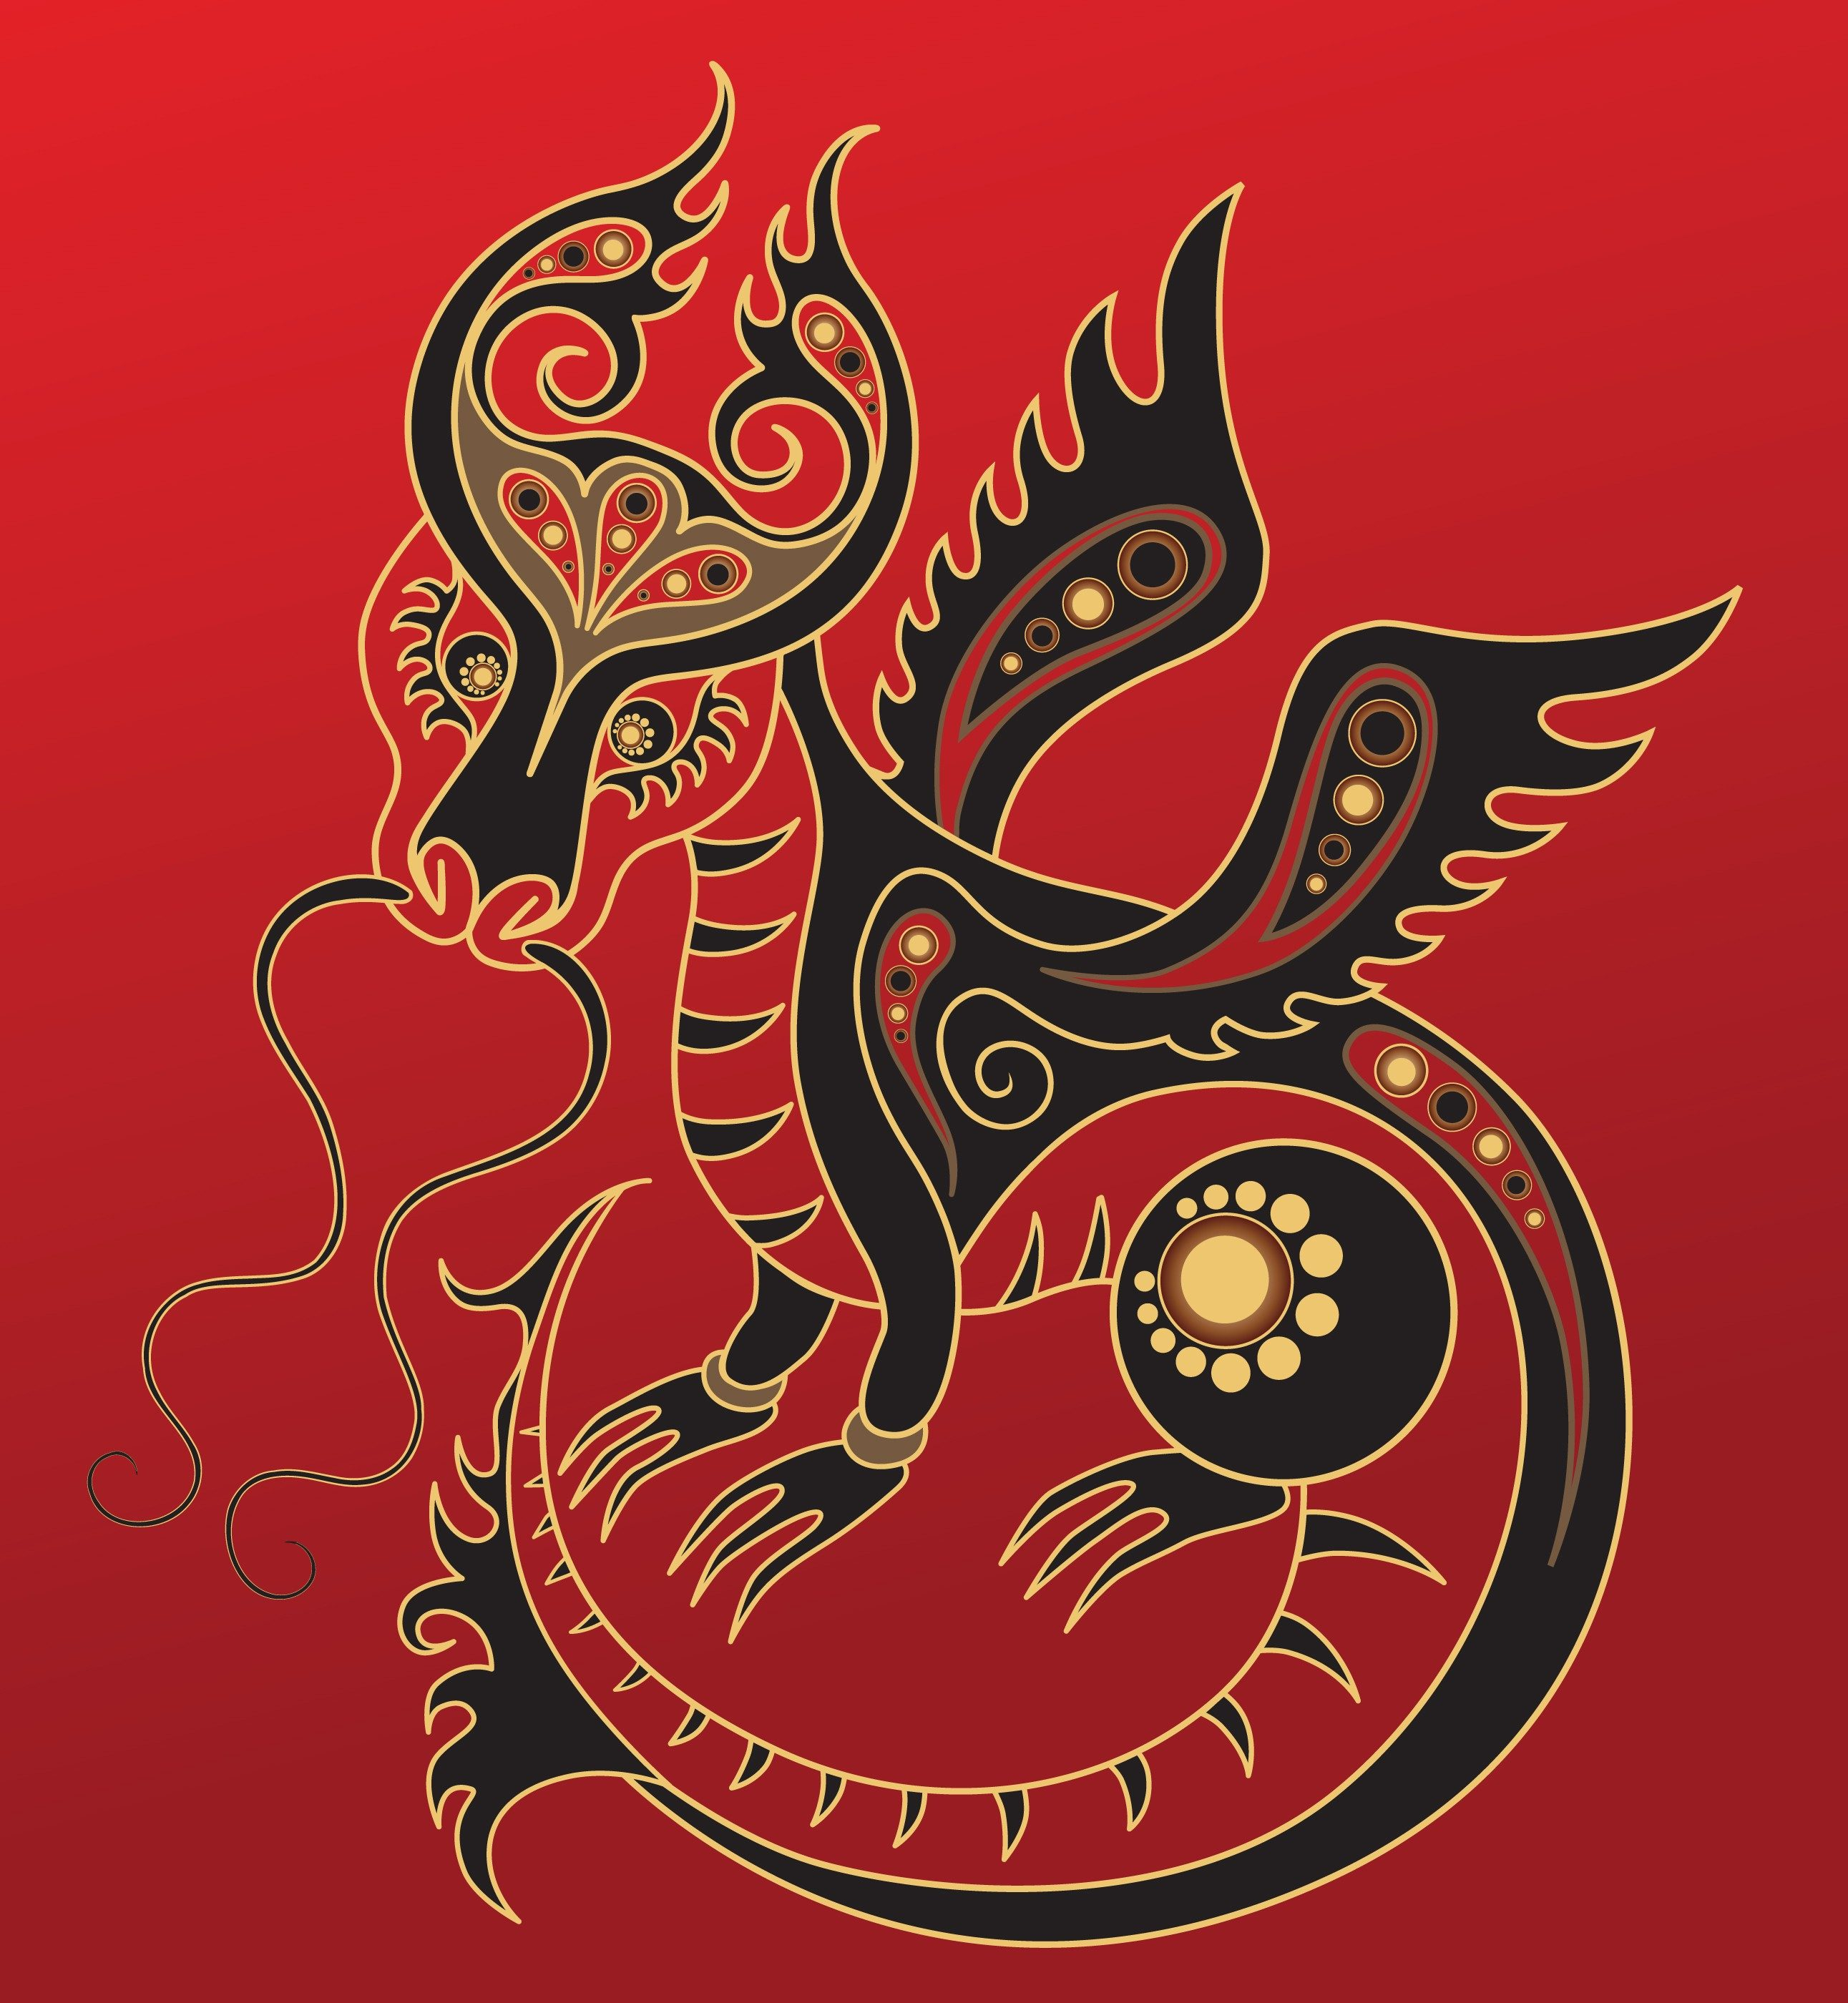 Dragon - Chinese horoscope animal sign. The vector art image in decorative style